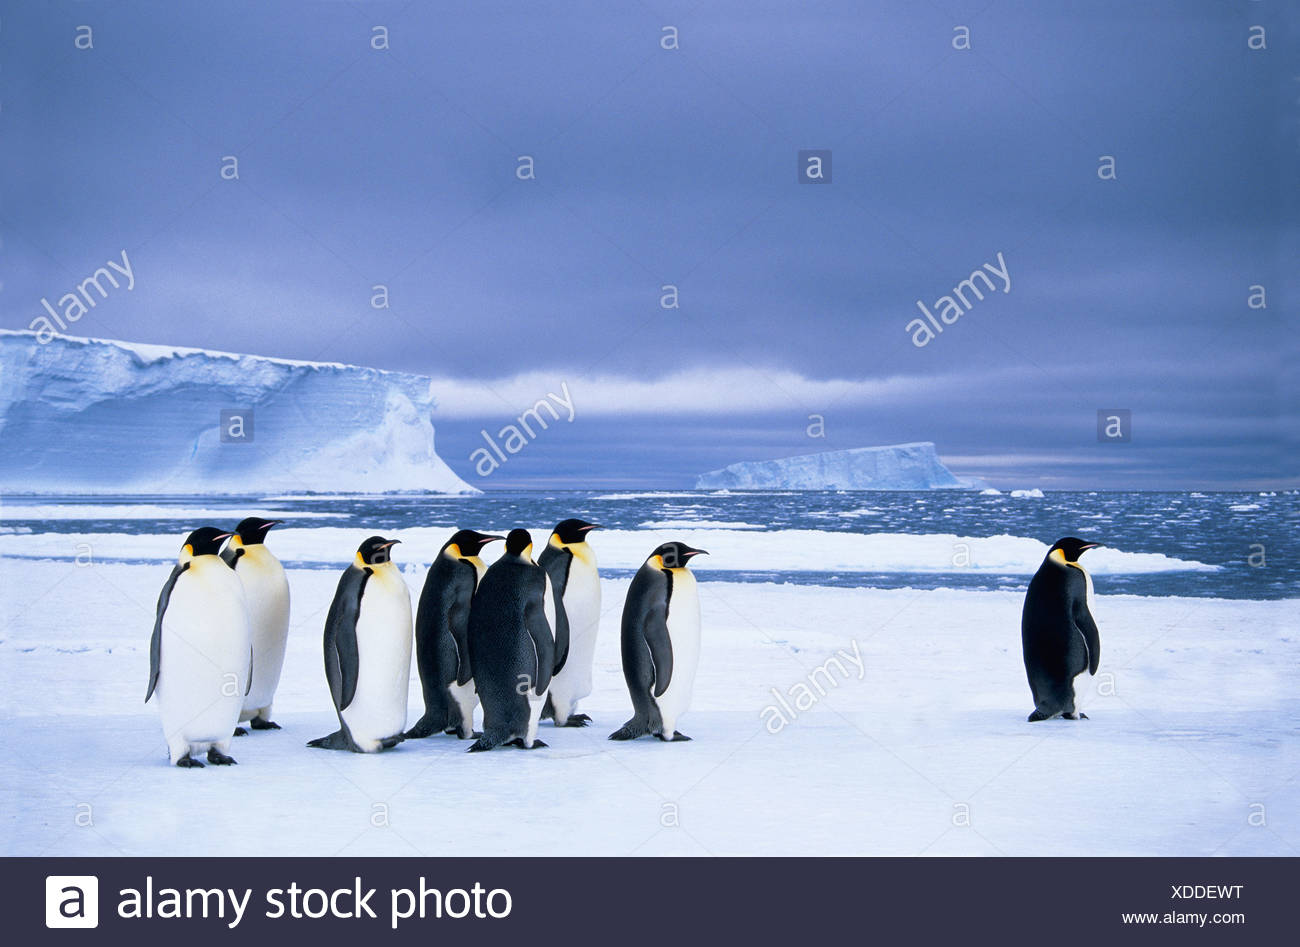 Emperor penguins (Aptenodytes forsteri) wait at the edge of the pack ice in preparation for a foraging journey out to sea, Dresc - Stock Image